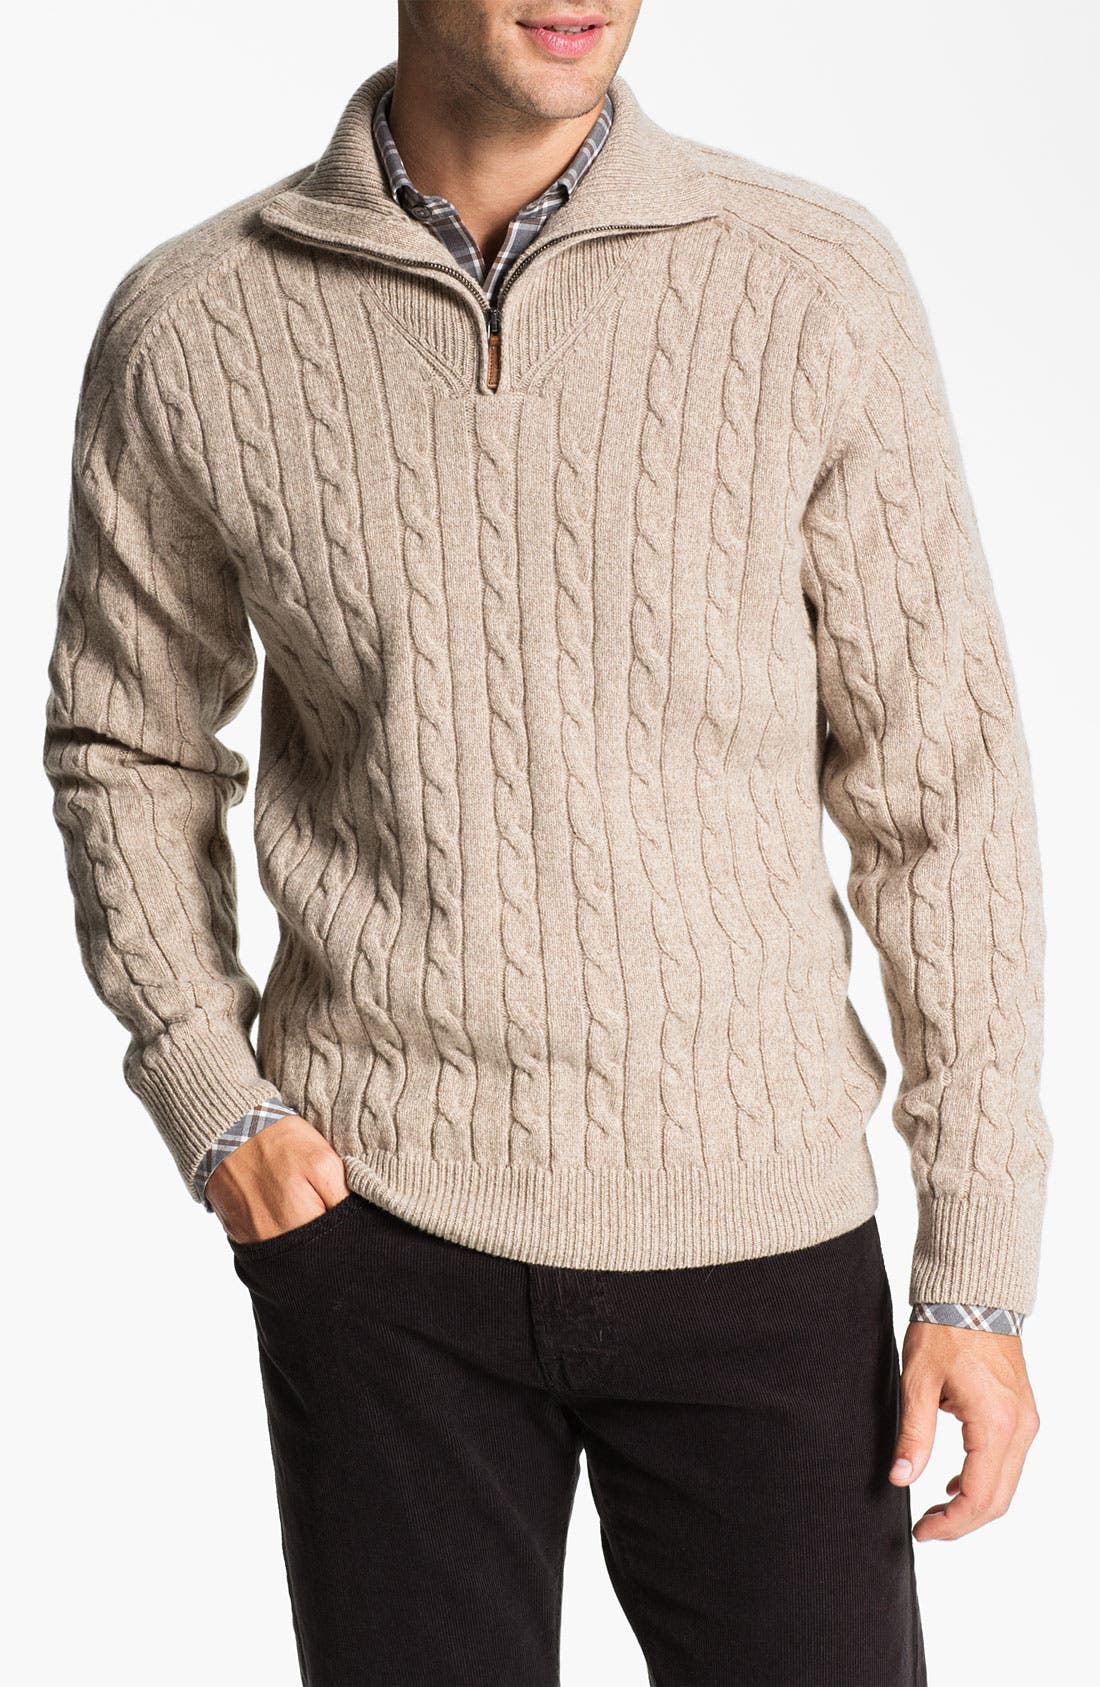 Alternate Image 1 Selected - Lora Gi Half Zip Wool & Cashmere Sweater